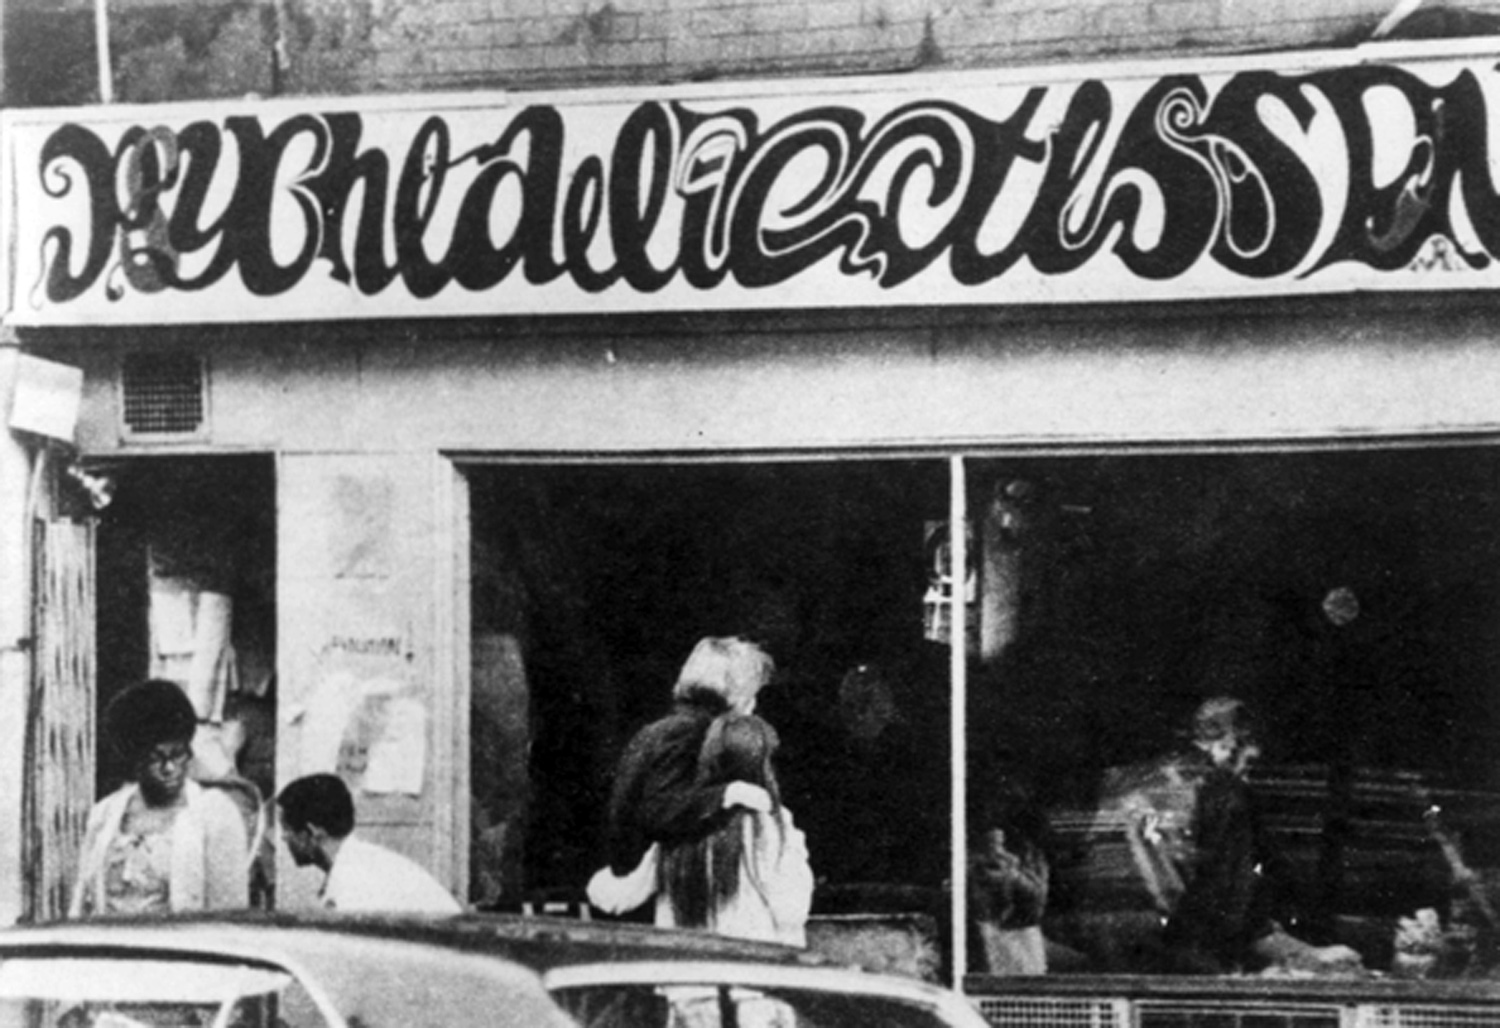 The Psychedelicatessen, a hippie hangout during the East Village boom of the 1960s